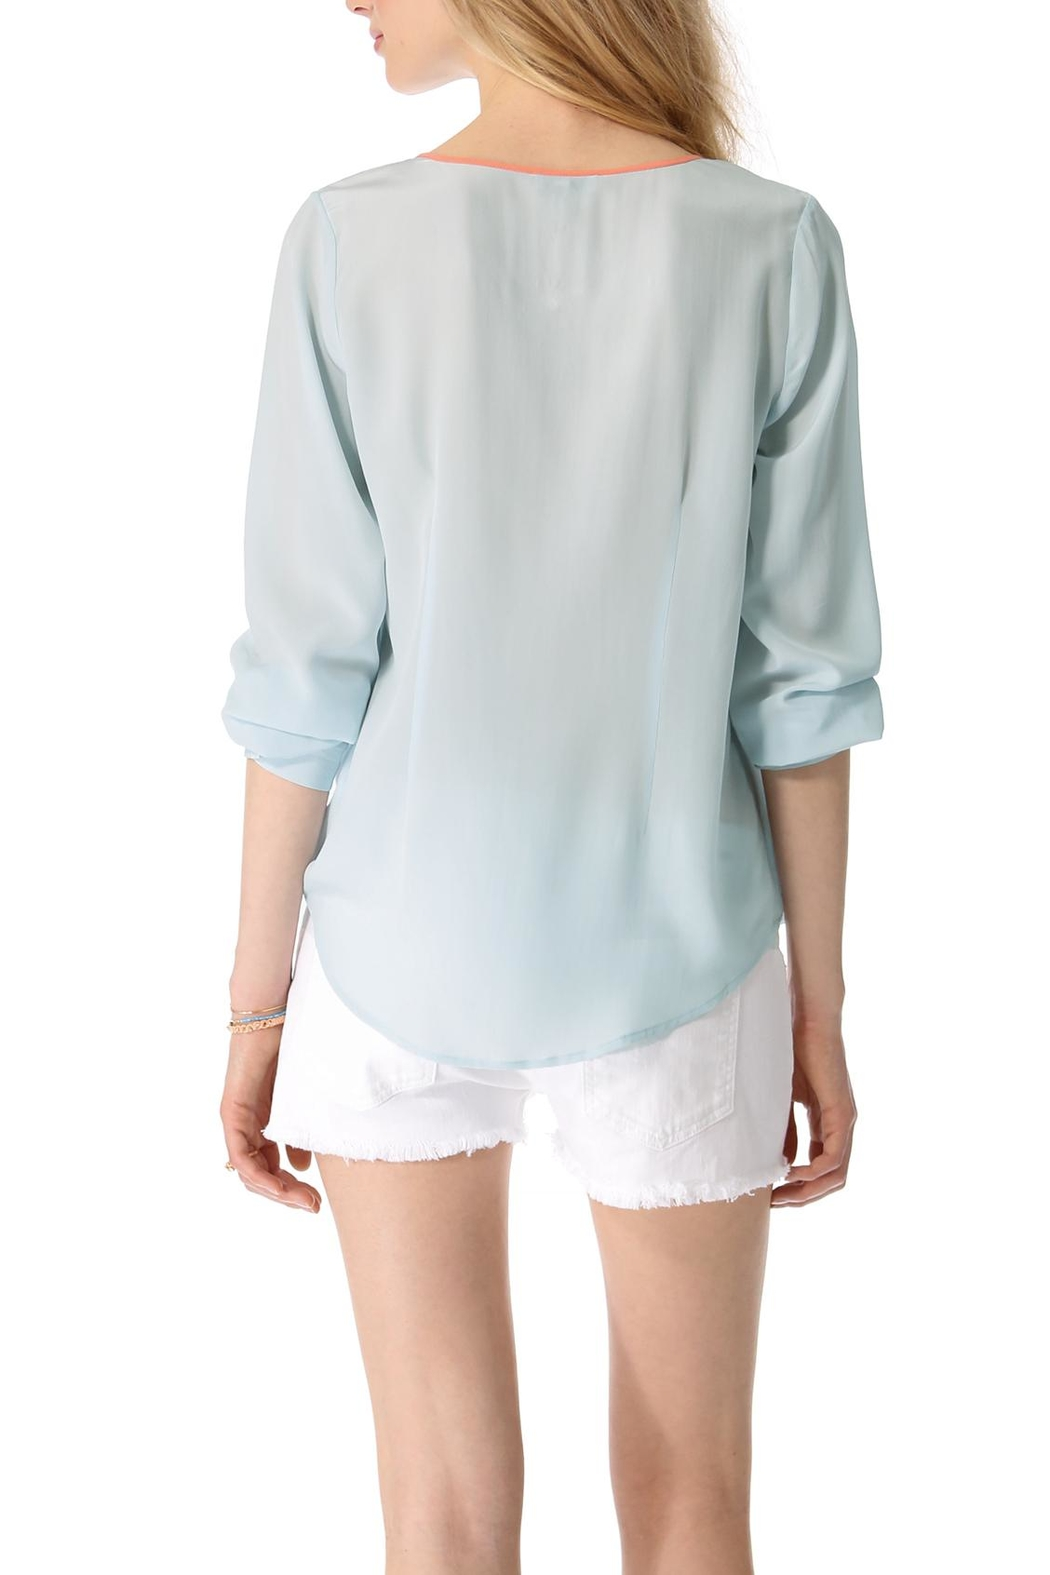 Joie Wixon Blouse - Front Full Image